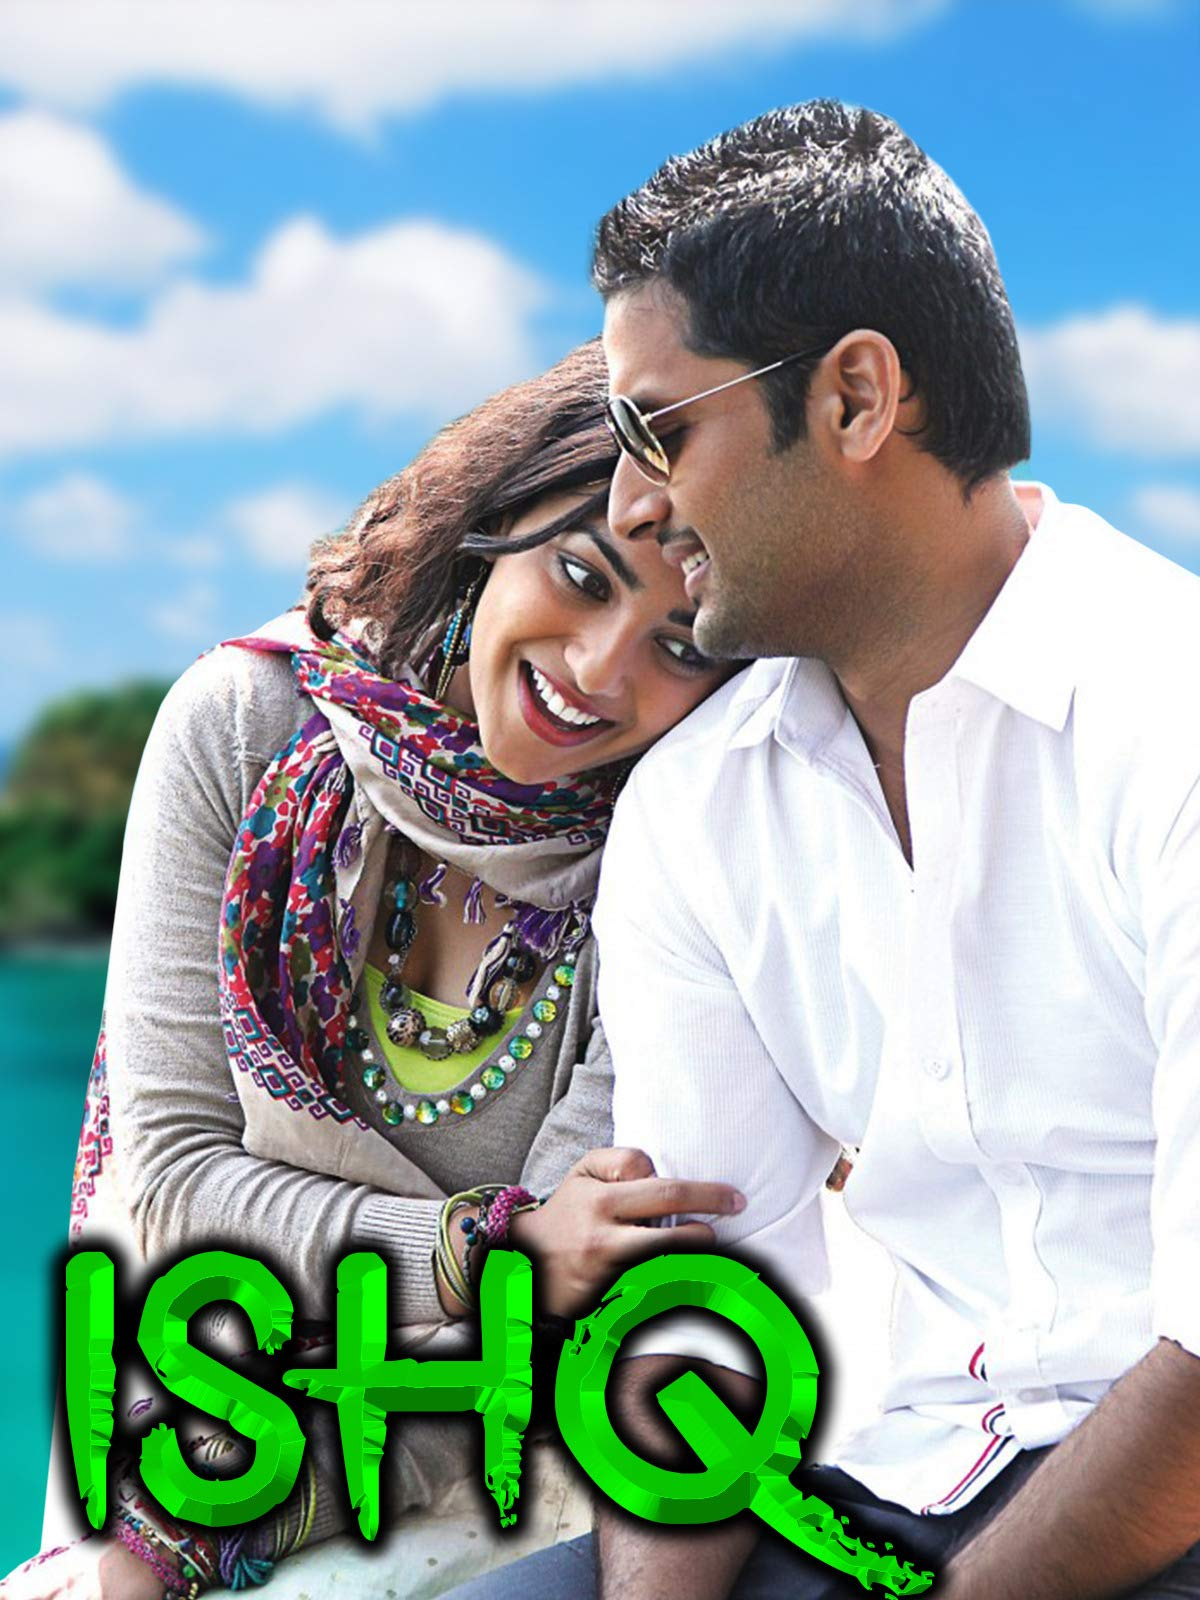 Ishq (2021) Hindi Dubbed 720p HDRip 900MB x264 AAC